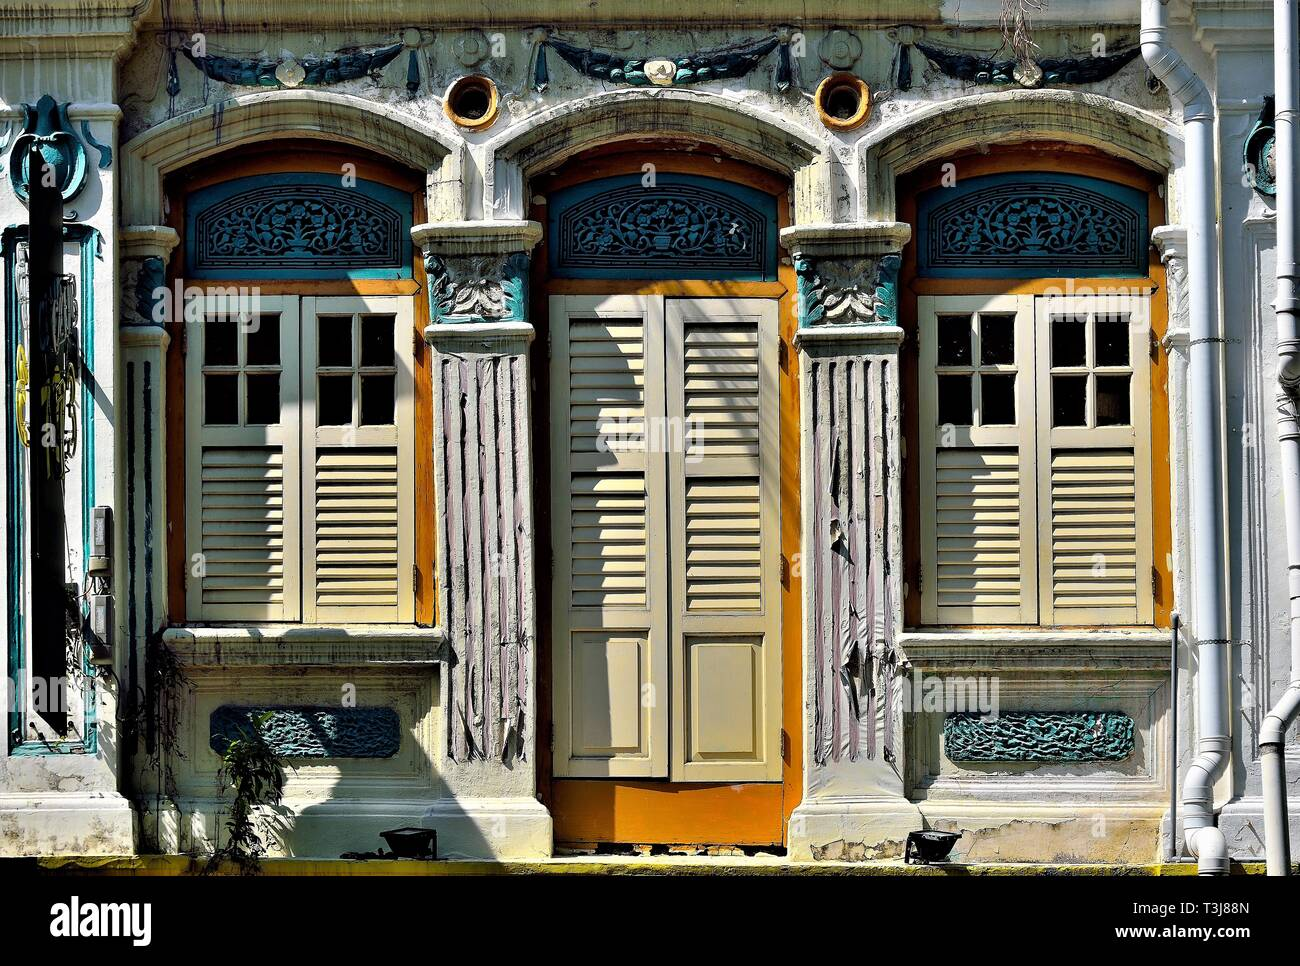 Straits Chinese or Peranakan Singapore shop house with ornate exterior, antique louvered shutters and arched windows in historic Little India Stock Photo